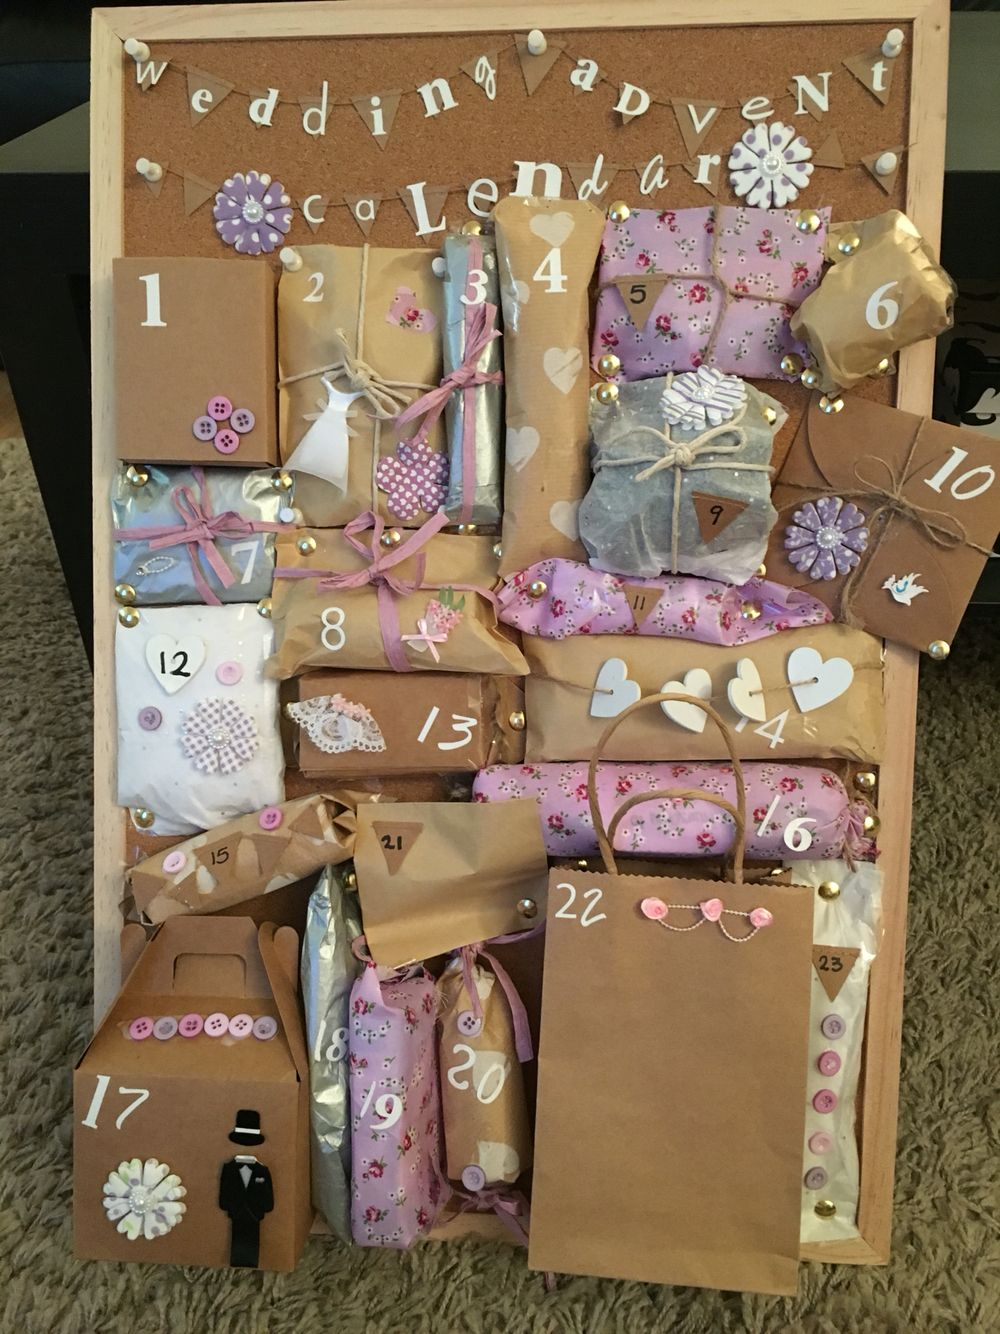 Advent Calendar Ideas Wedding : Made this wedding advent calendar for my best friend who